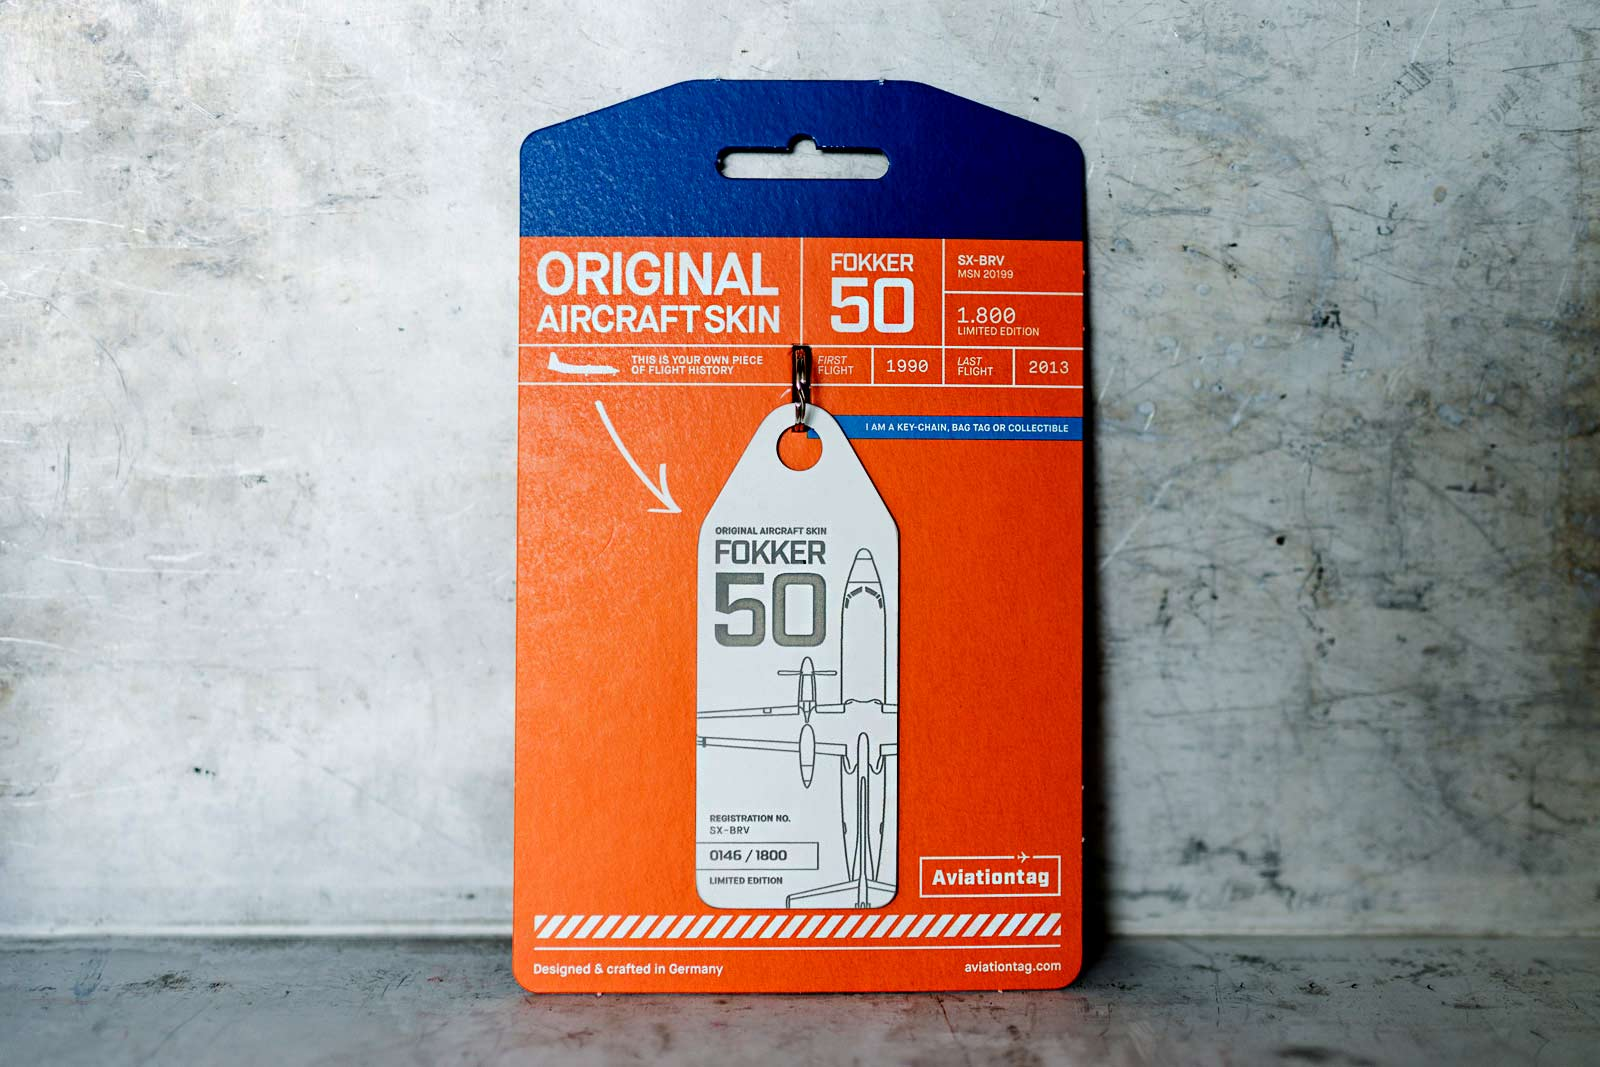 Buy the F50 Aviationtag now!